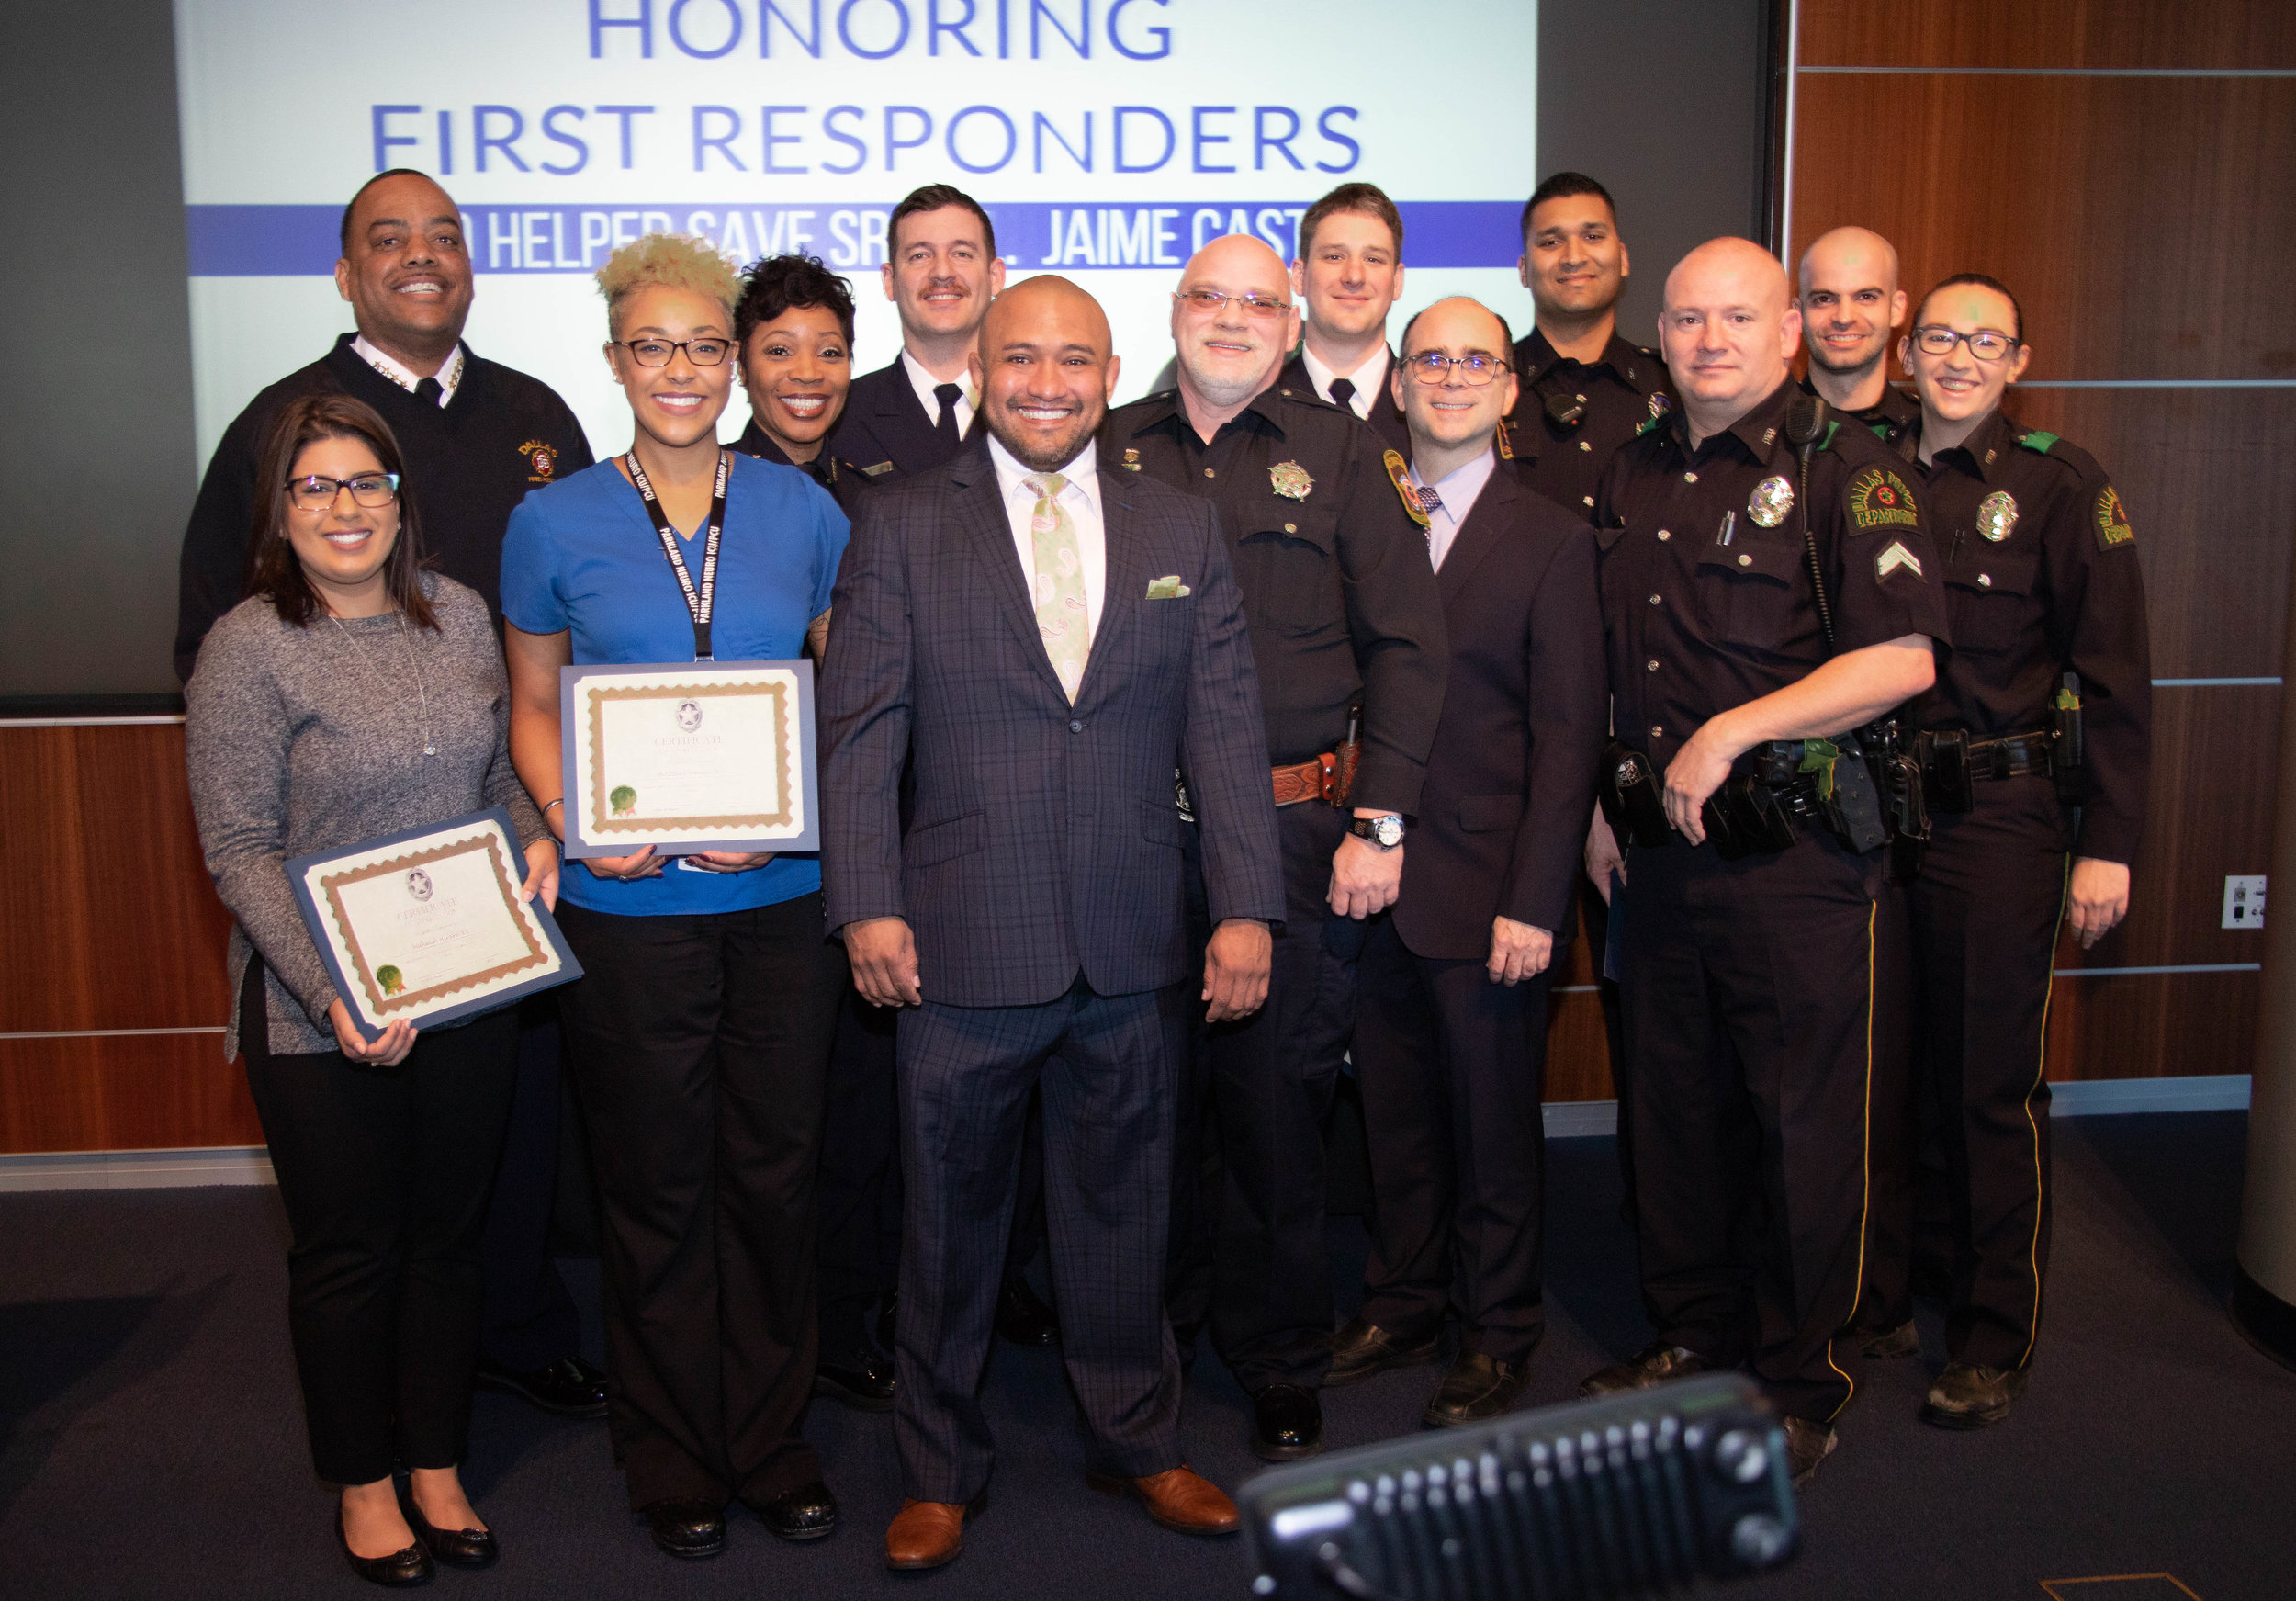 Dallas Police Chief Senior Corporal Jaime Castro with the group of healthcare heroes that saved his life.